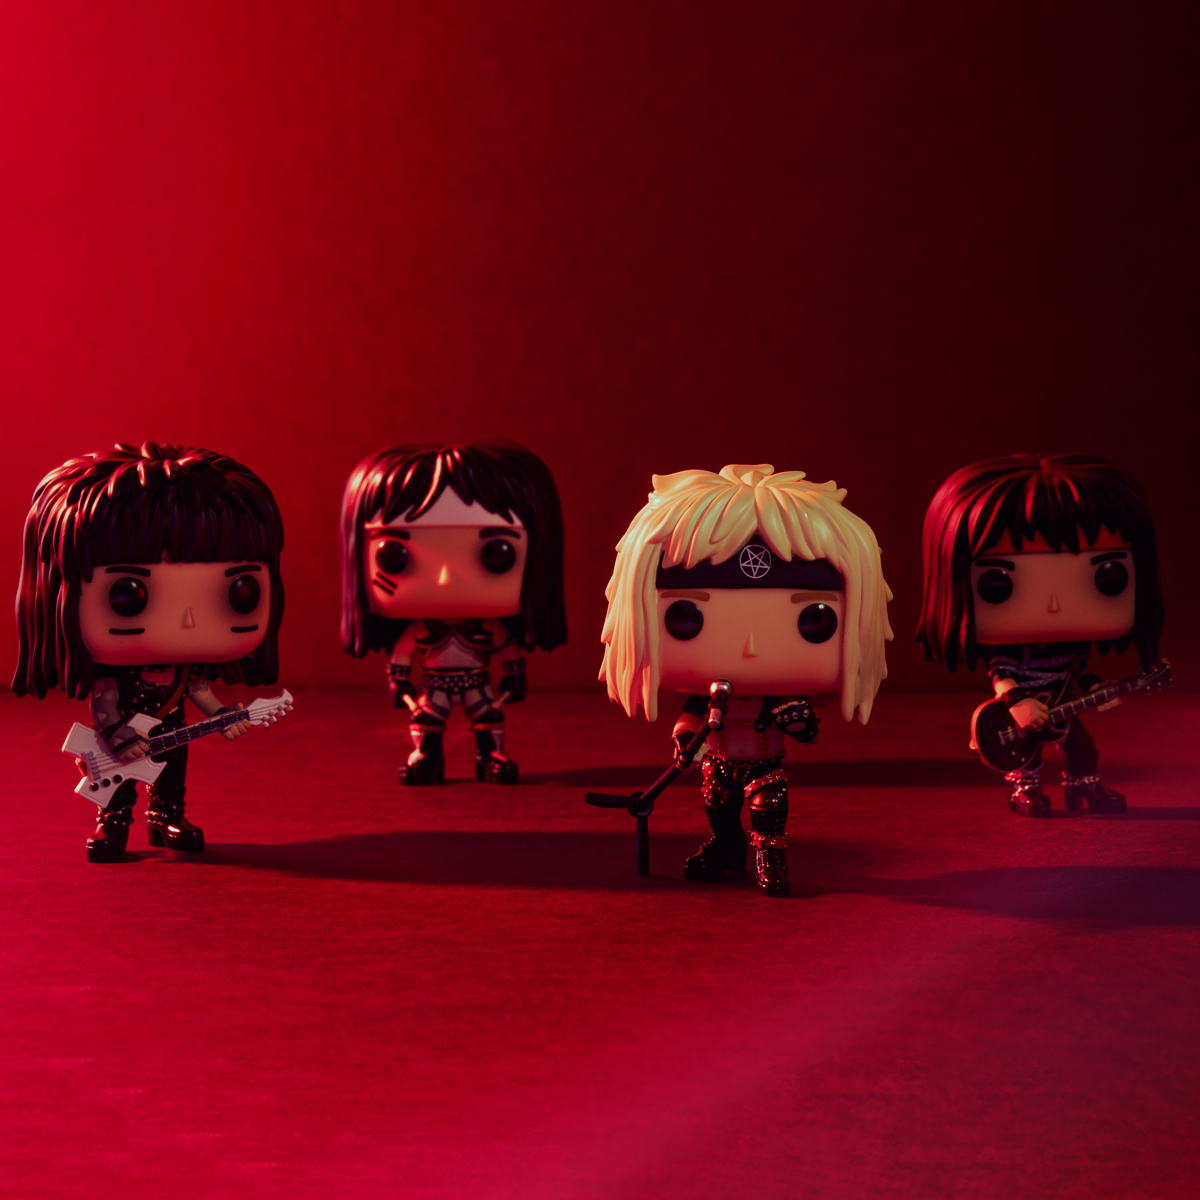 Did you know Mötley Crüe has sold over 100 million albums worldwide? Which album is your favorite? #MotleyCrue